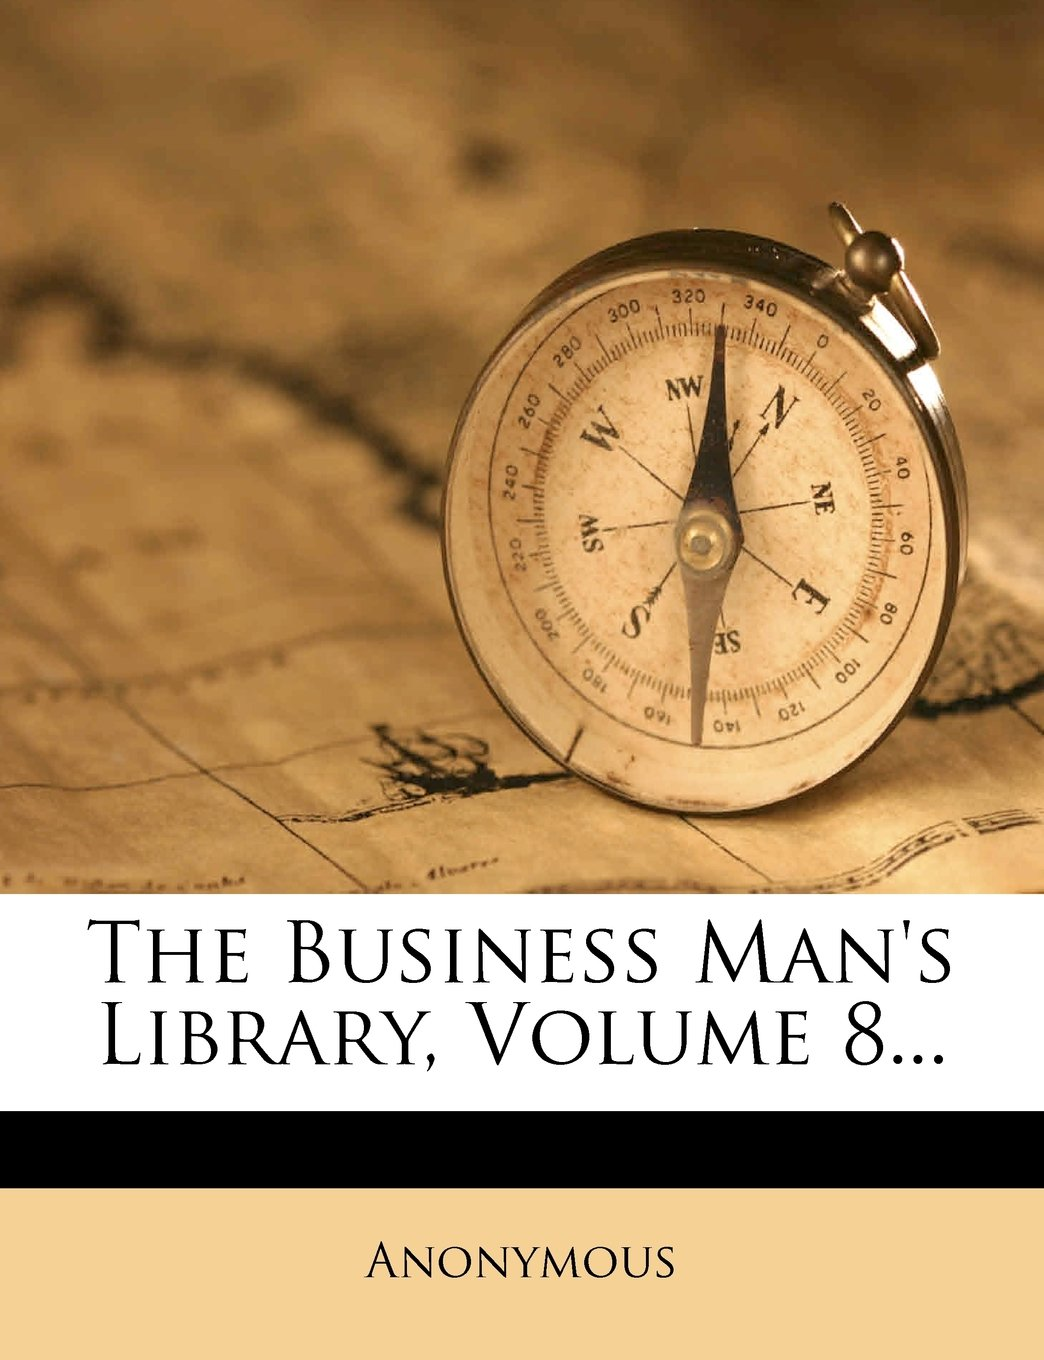 The Business Man's Library, Volume 8... pdf